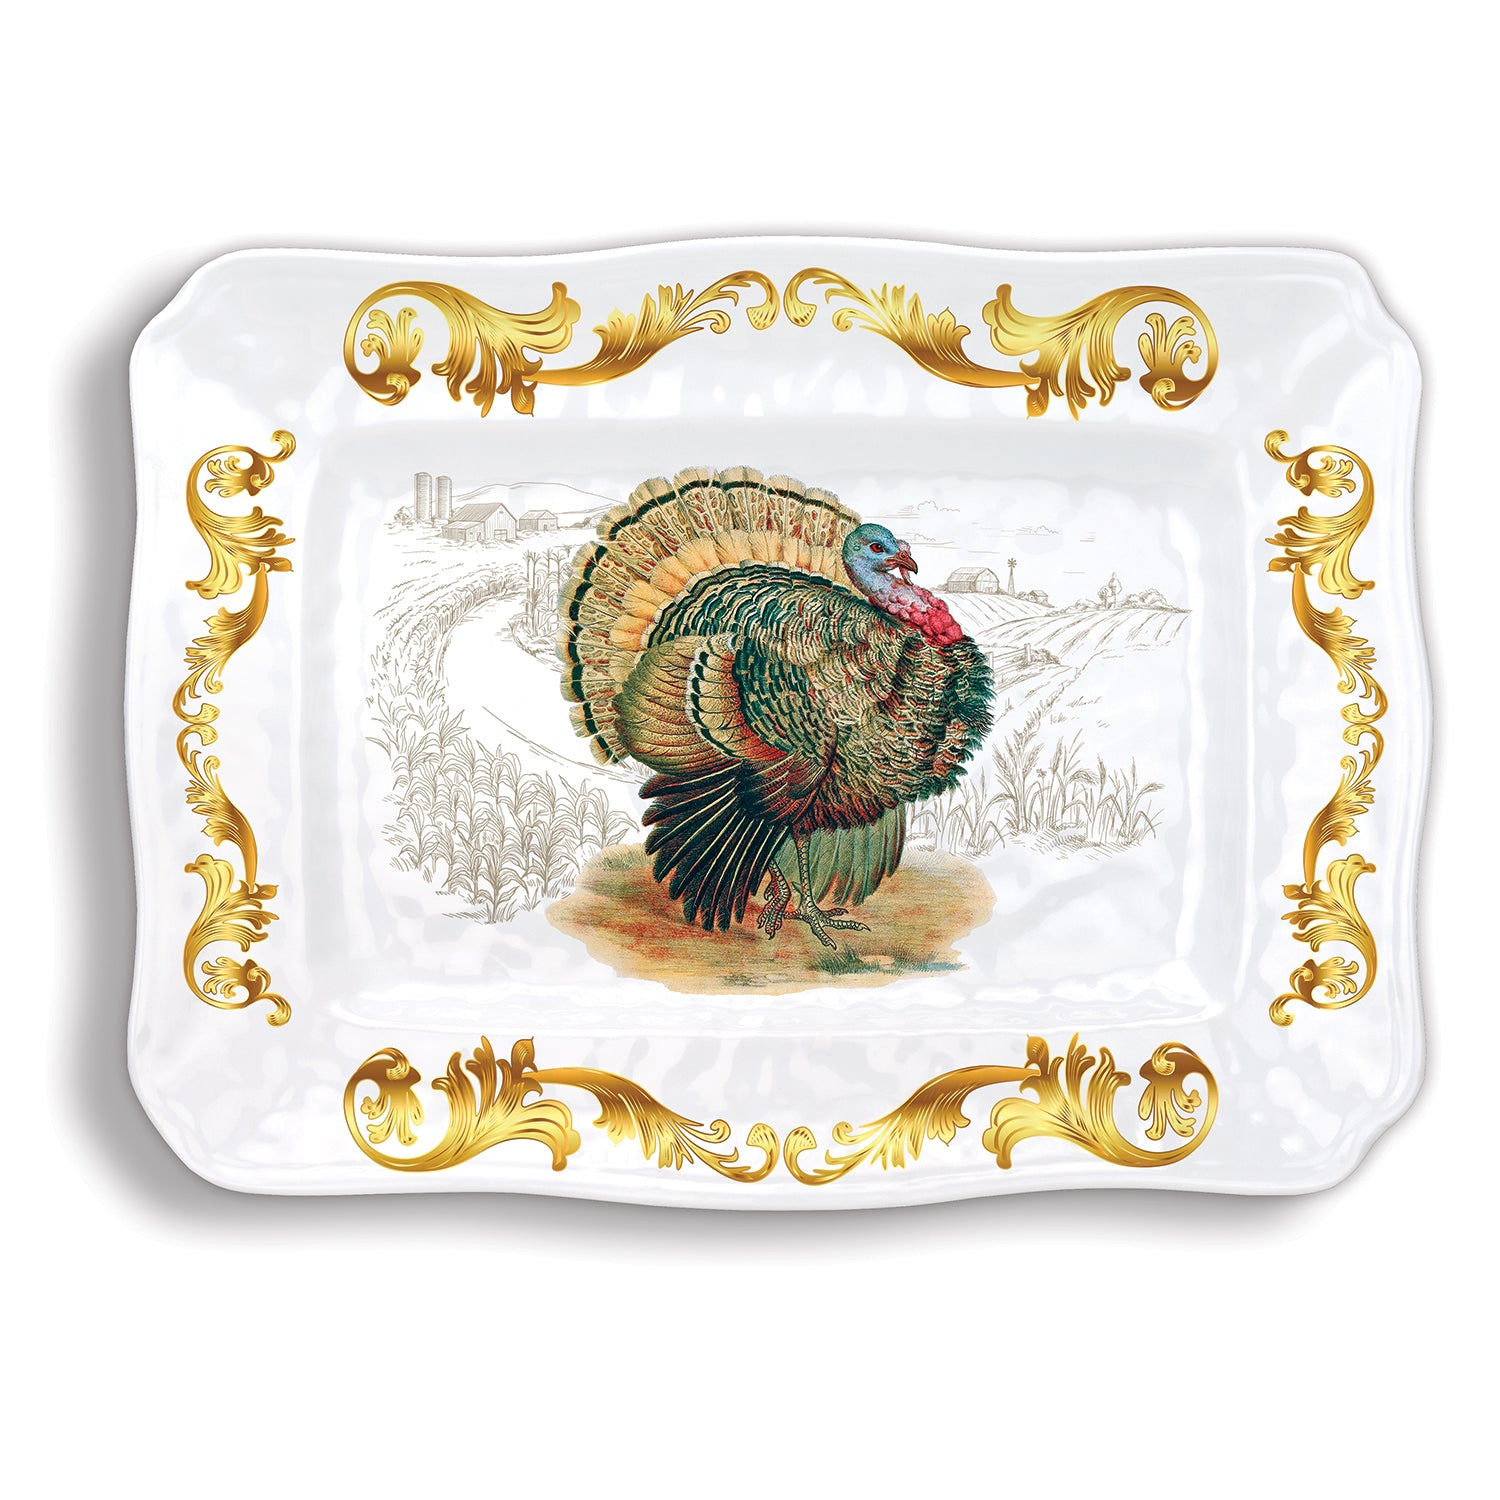 Fall Harvest Turkey Melamine Serveware Large Platter